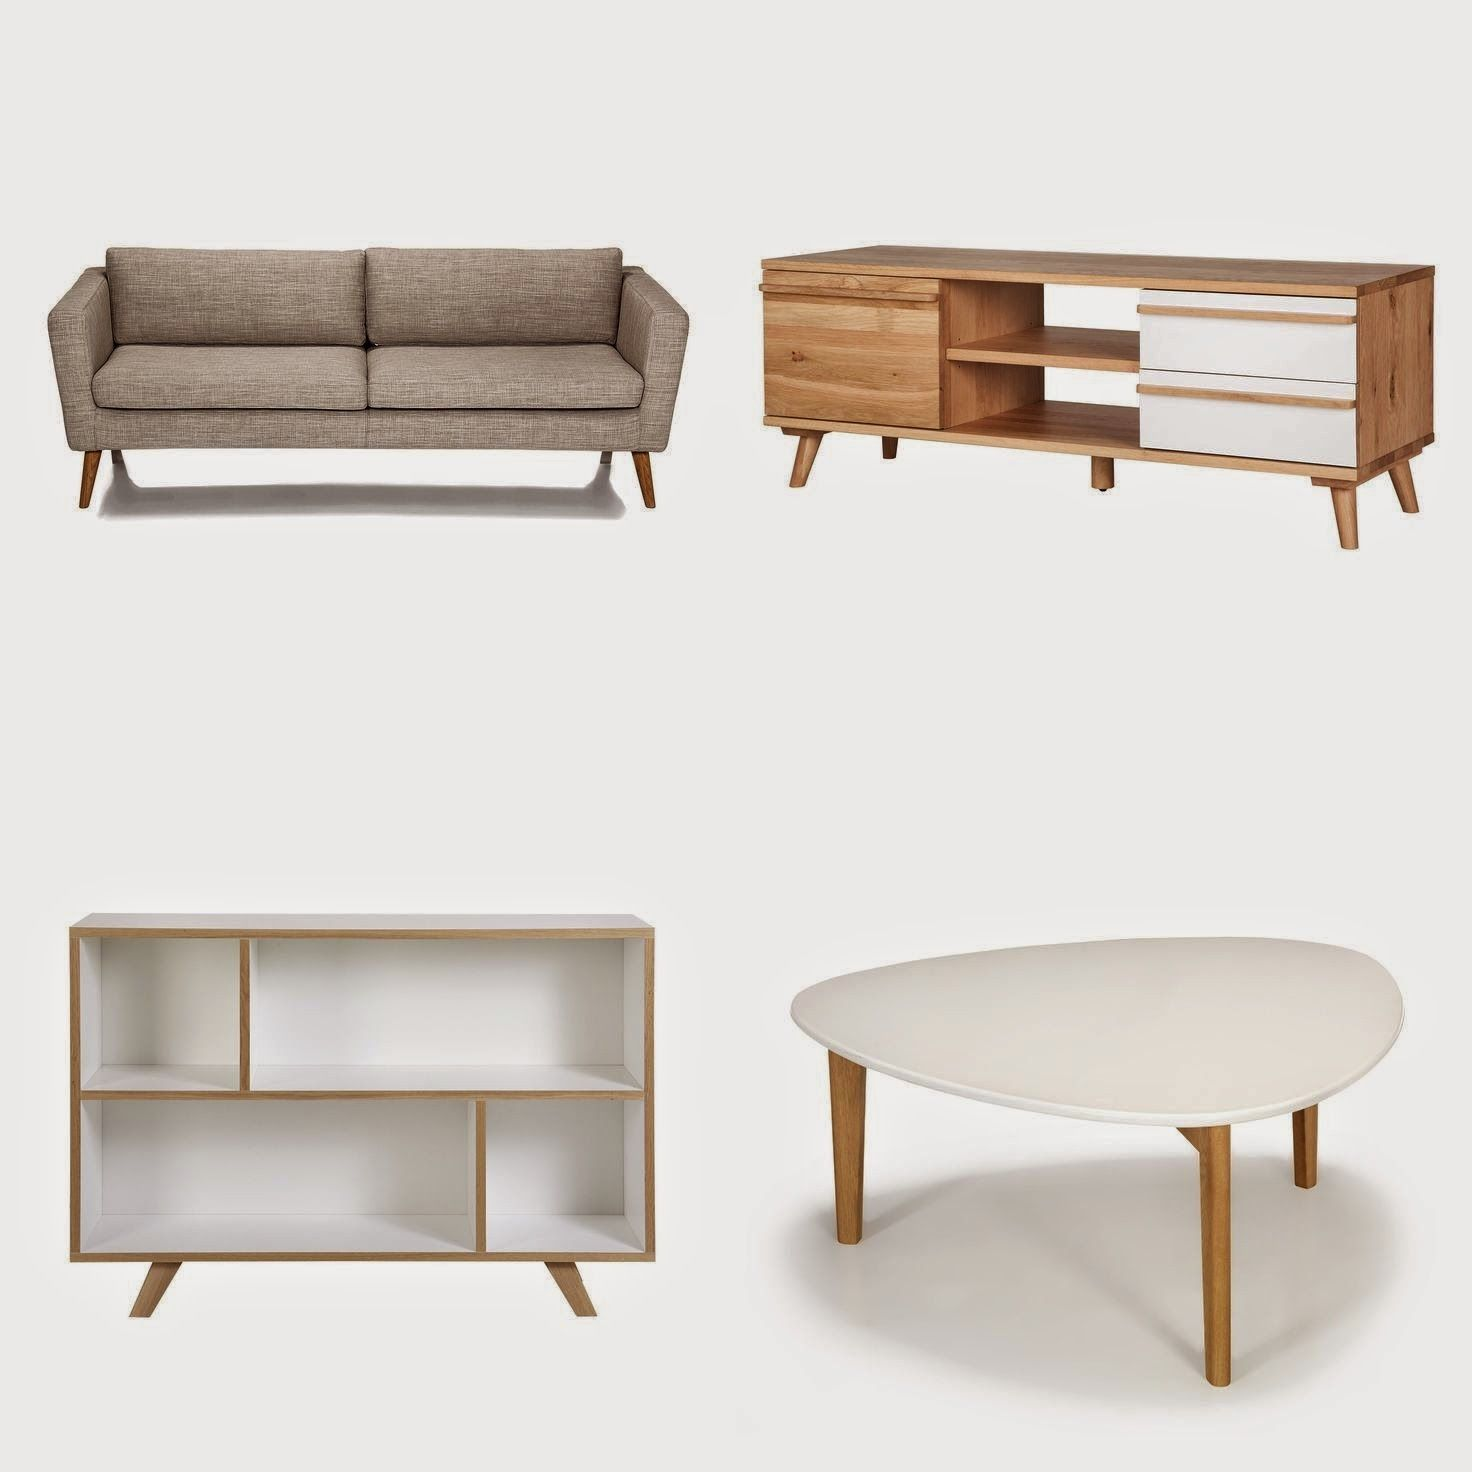 alin a salon canap meuble tv buffet table scandinave bullelodie. Black Bedroom Furniture Sets. Home Design Ideas